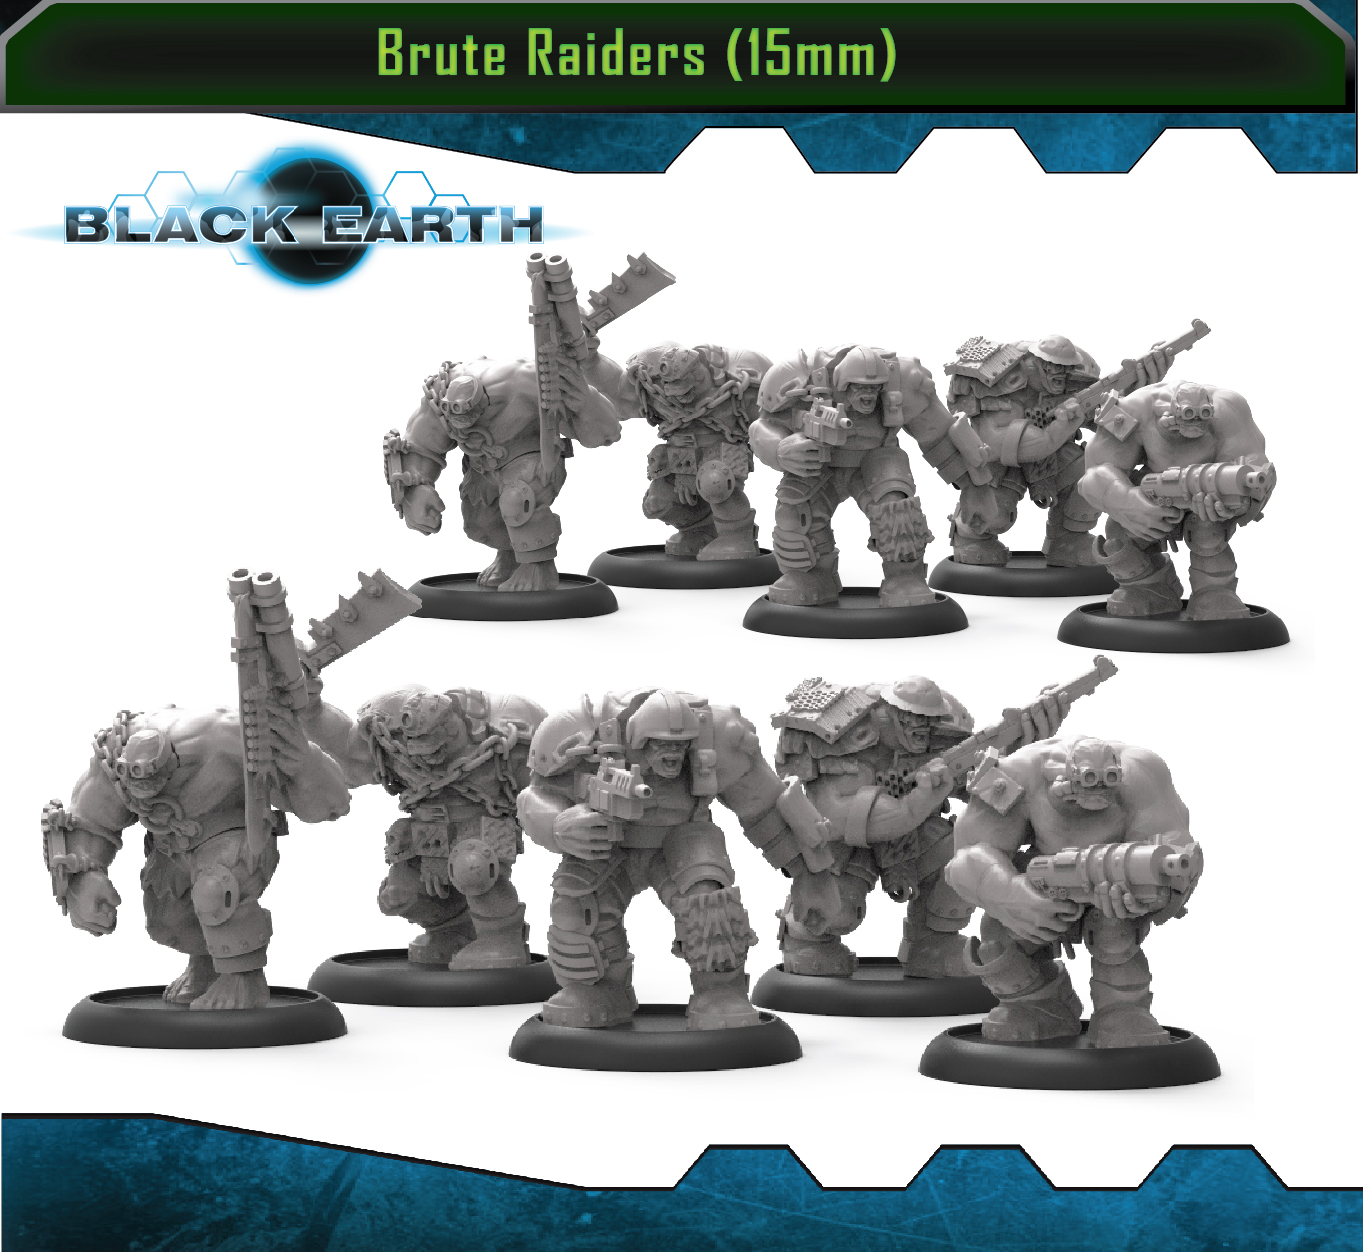 Brute-Raiders-15mm-20.jpg